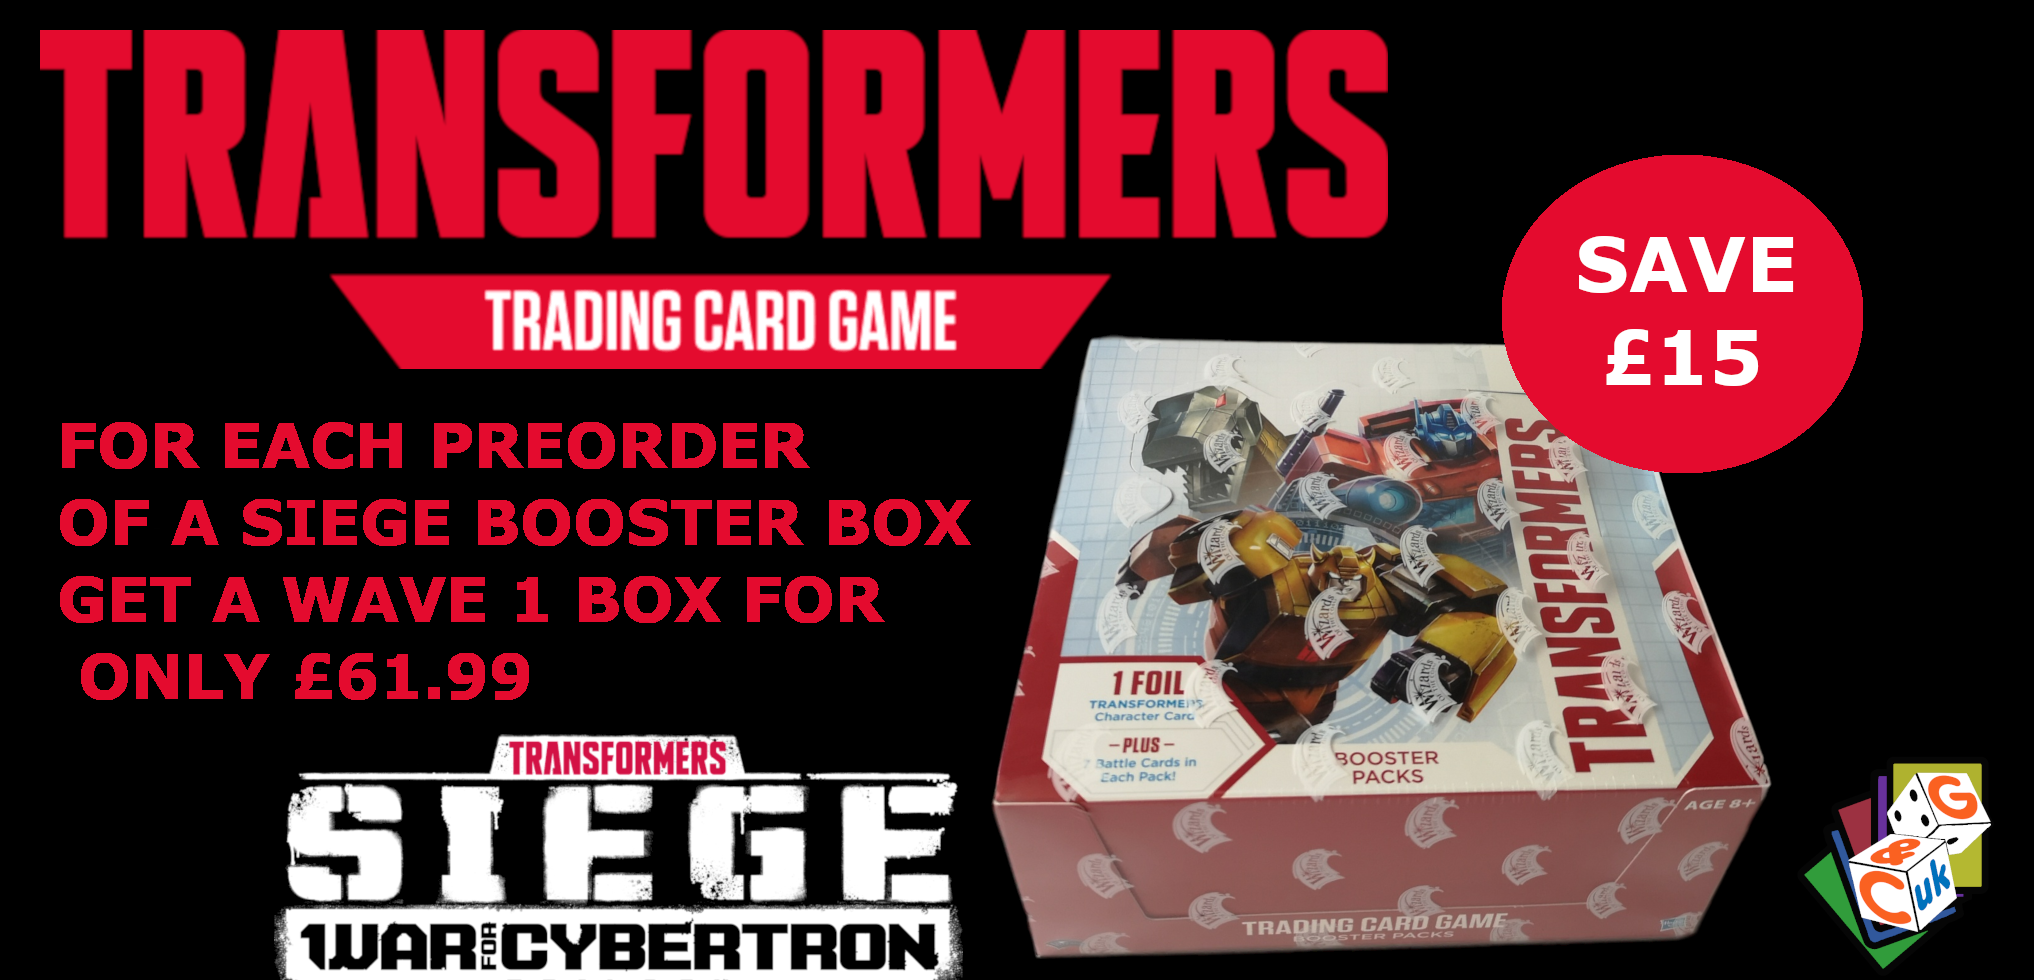 Transformers Trading Card Game Special Offer - Preorder a SIEGE booster box, get a Wave 1 booster box for £61.99